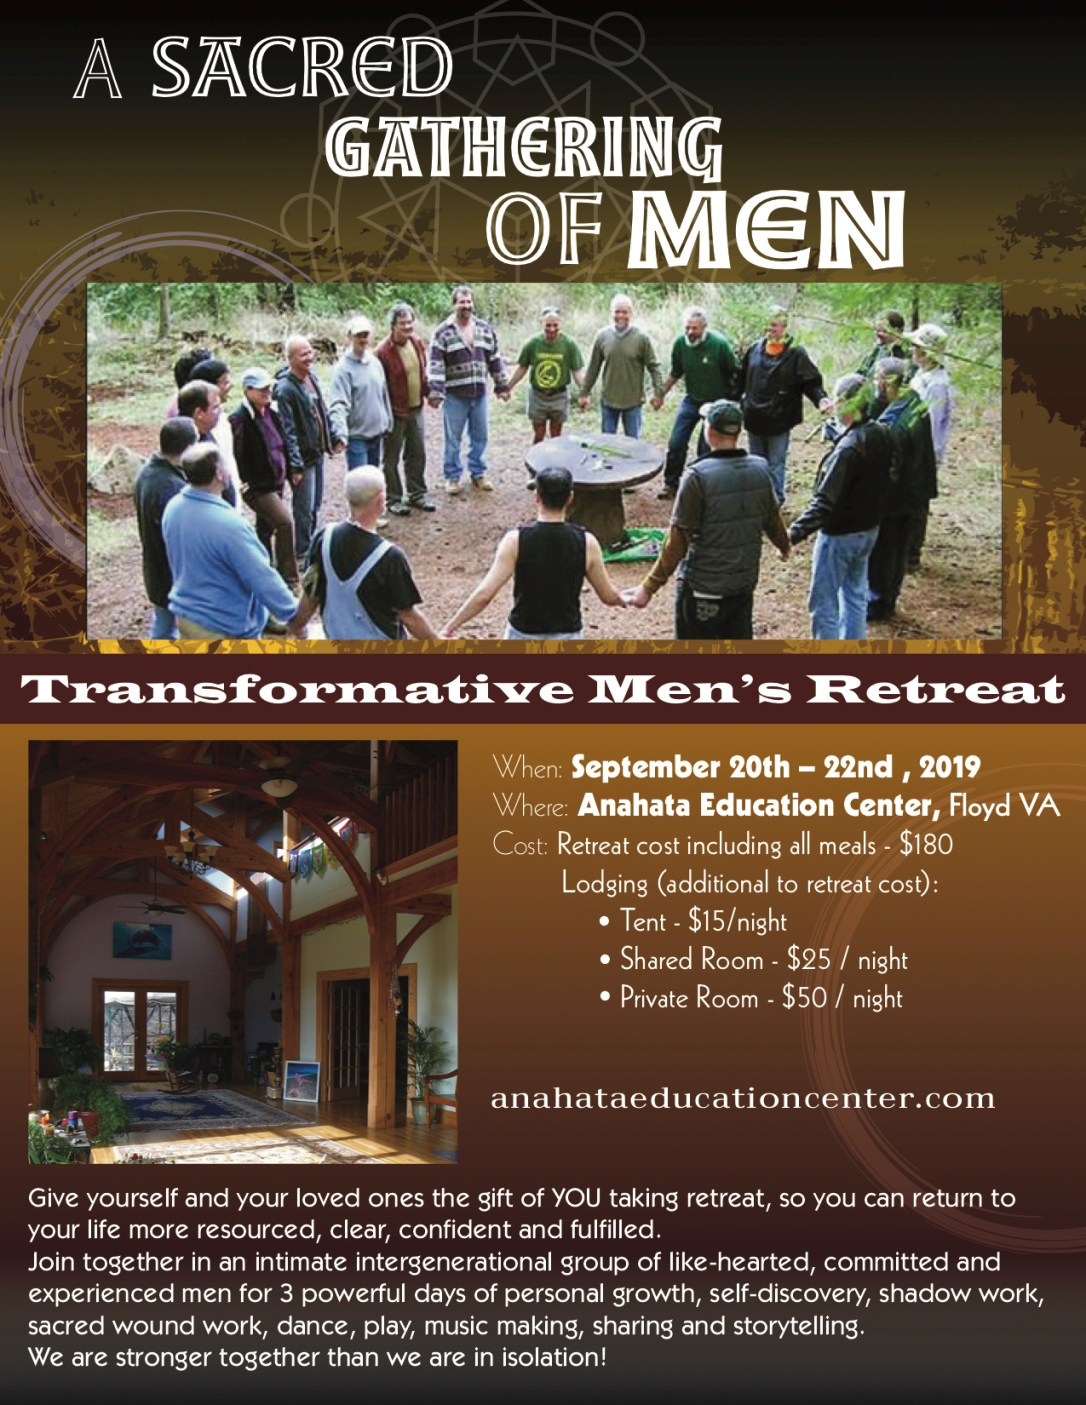 Men's Retreat - Flyer - Sacred_gathering_of_men (003).jpg